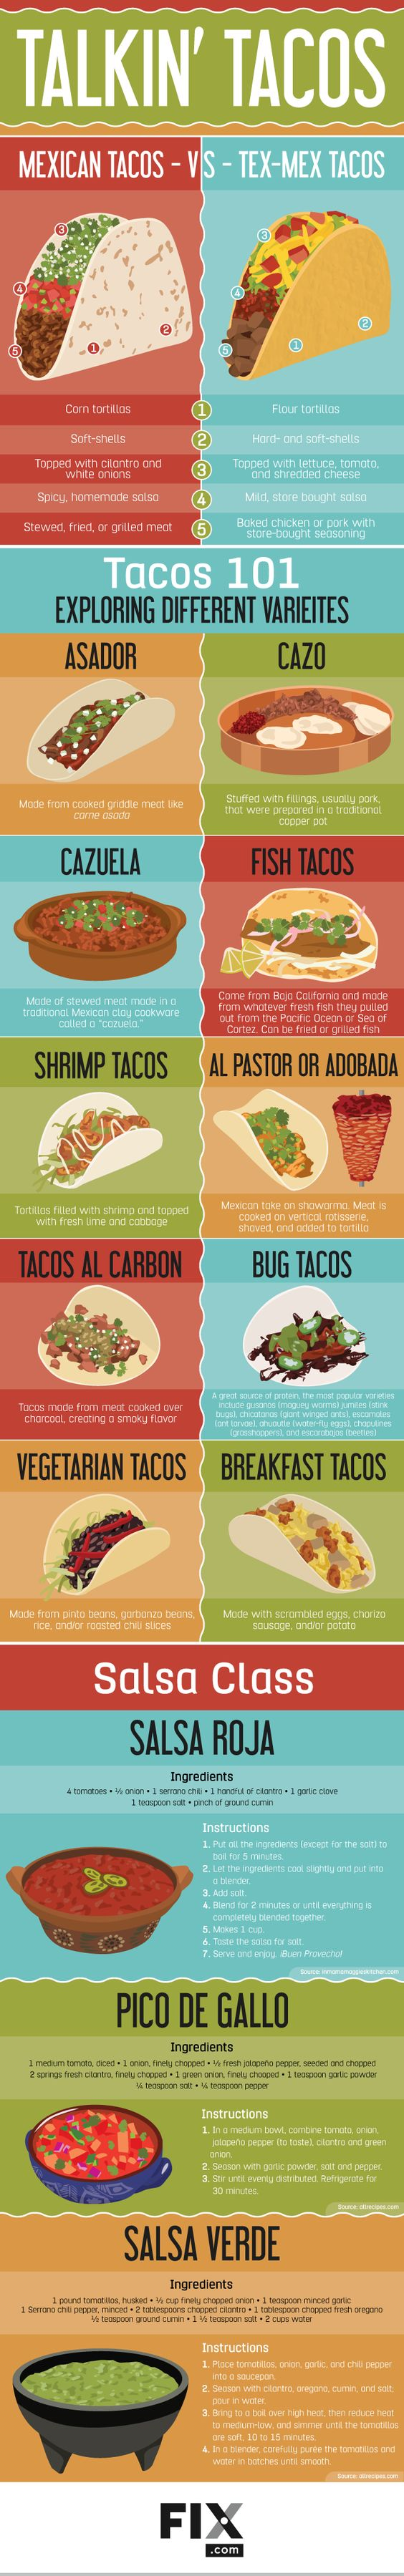 Tacos don't need to be reserved for just Tuesdays! Learn all about authentic Mexican cuisine and bring your taco game to the next level!